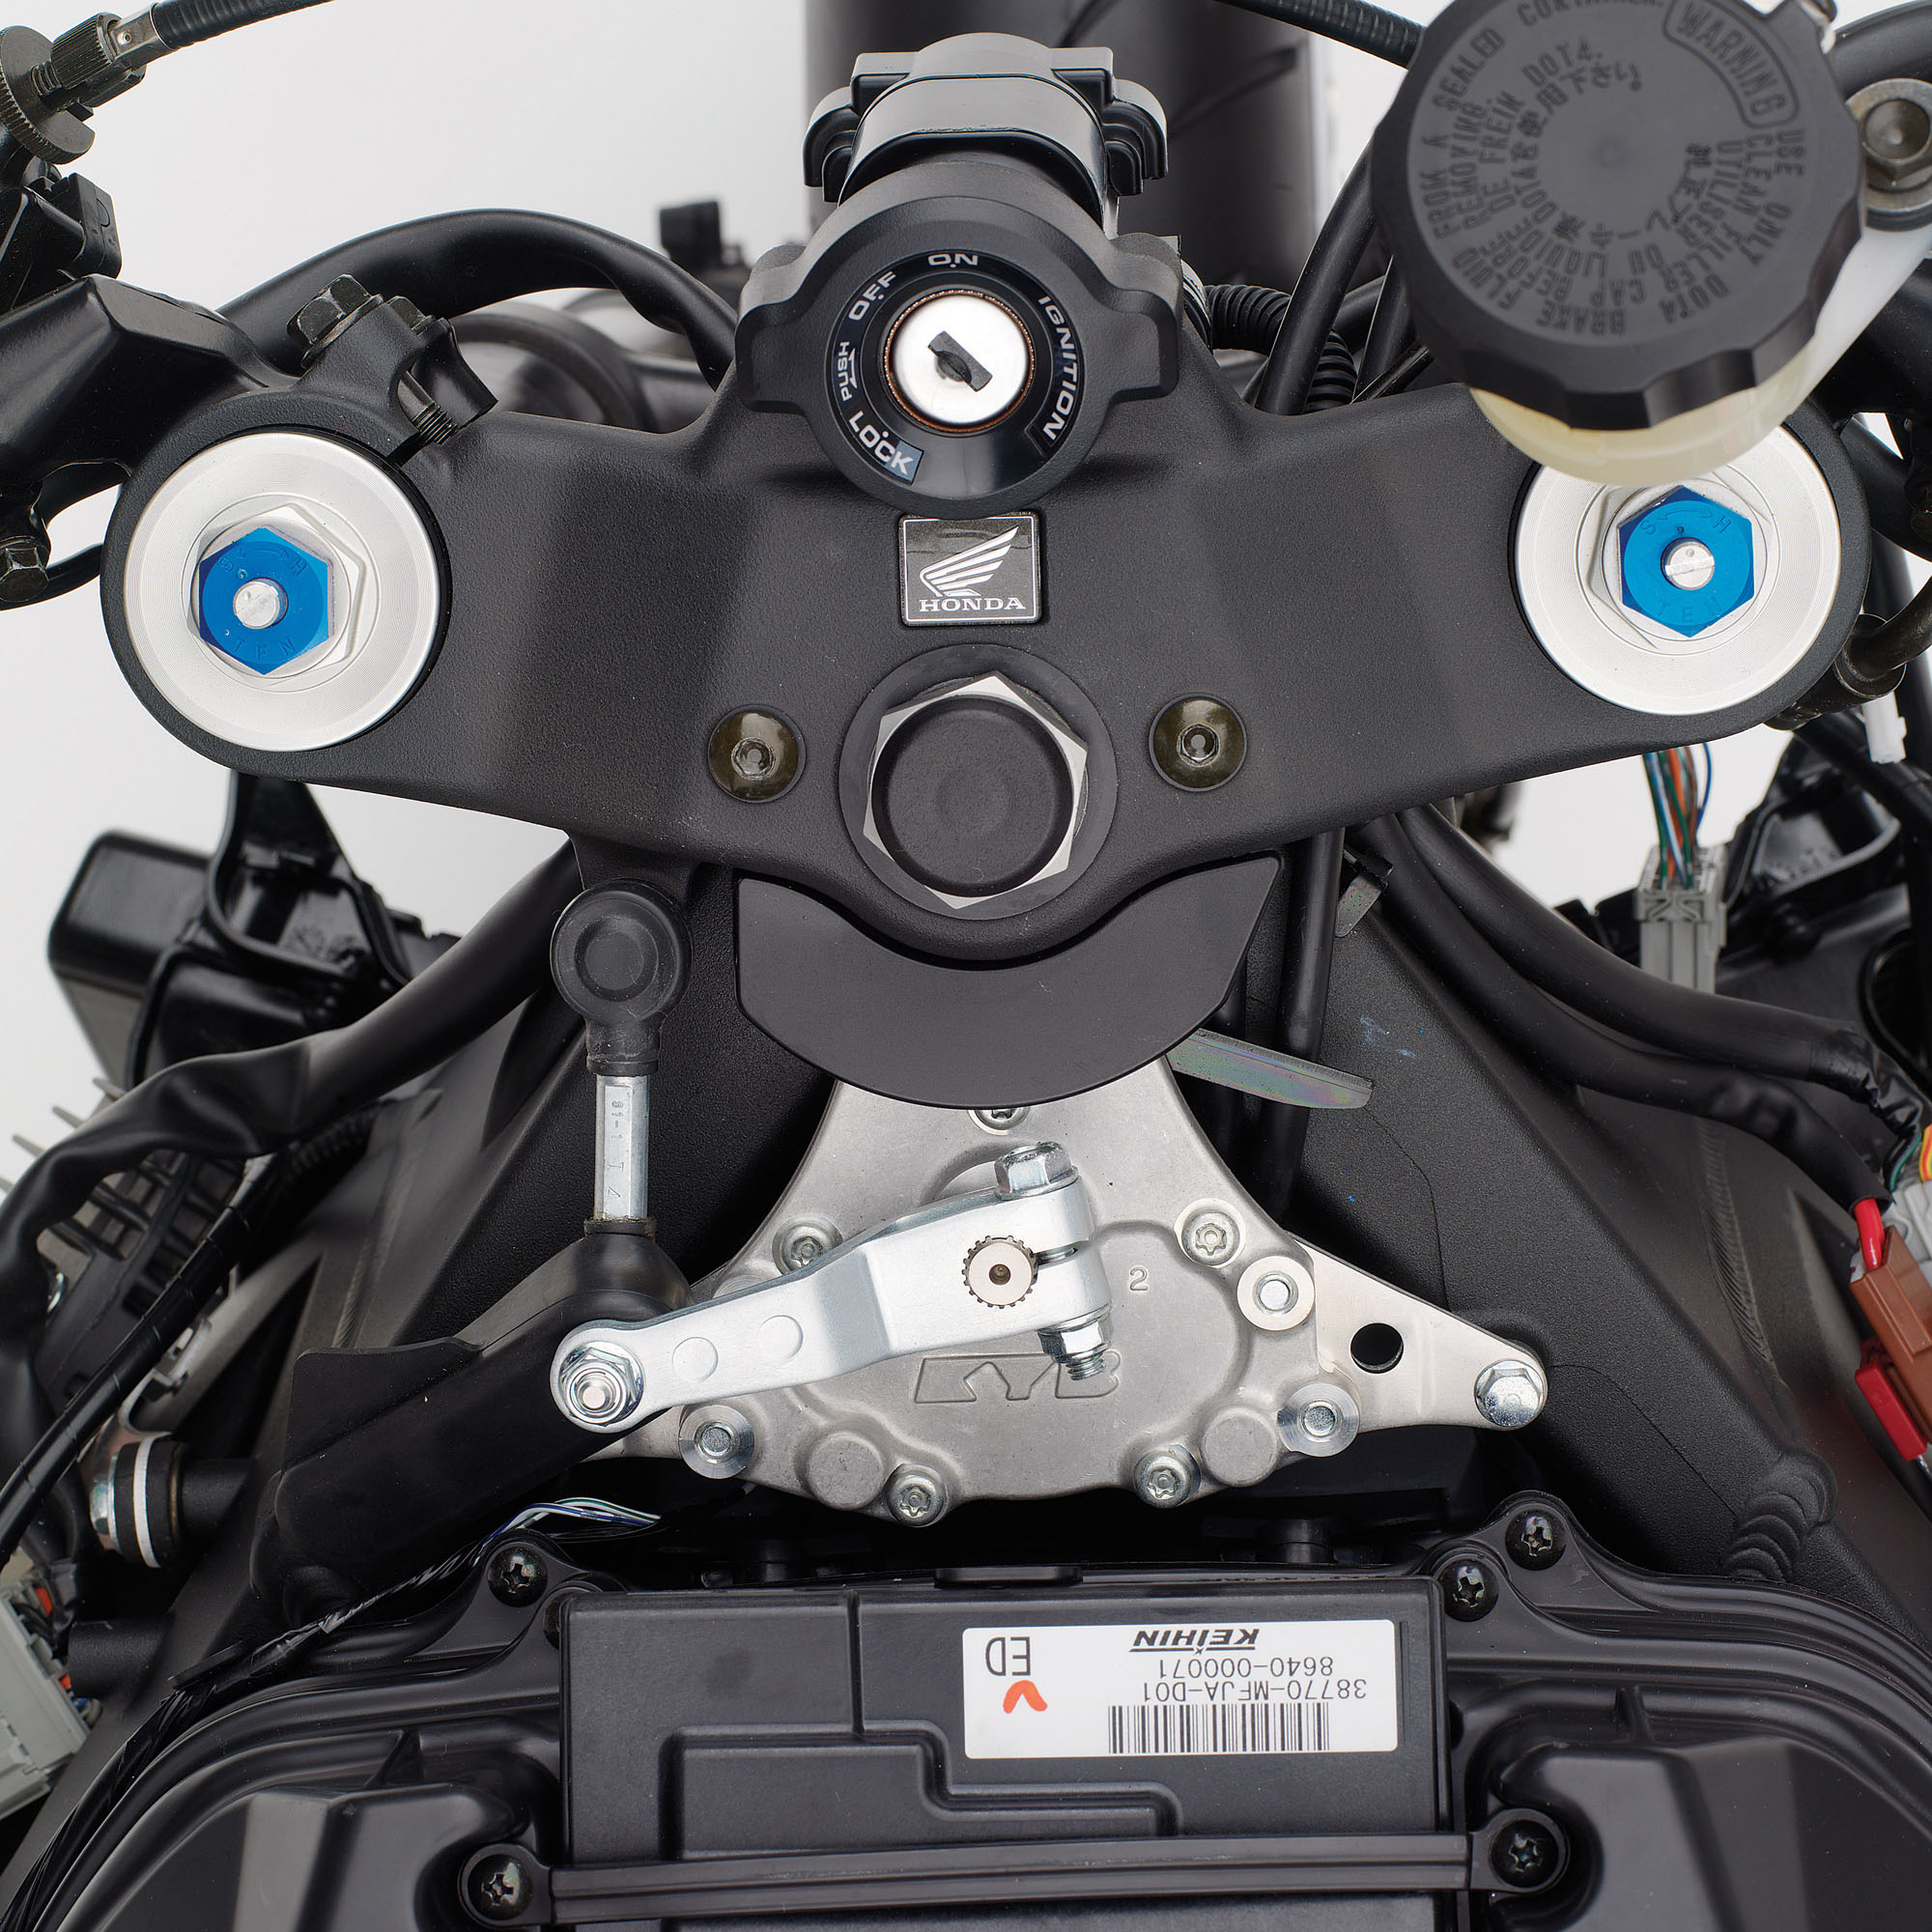 2016-honda-cbr-cbr600rr-sport-bike-motorcycle-supersport-600-rr-cbr-600rr-frame-engine-suspension-exhaust-10